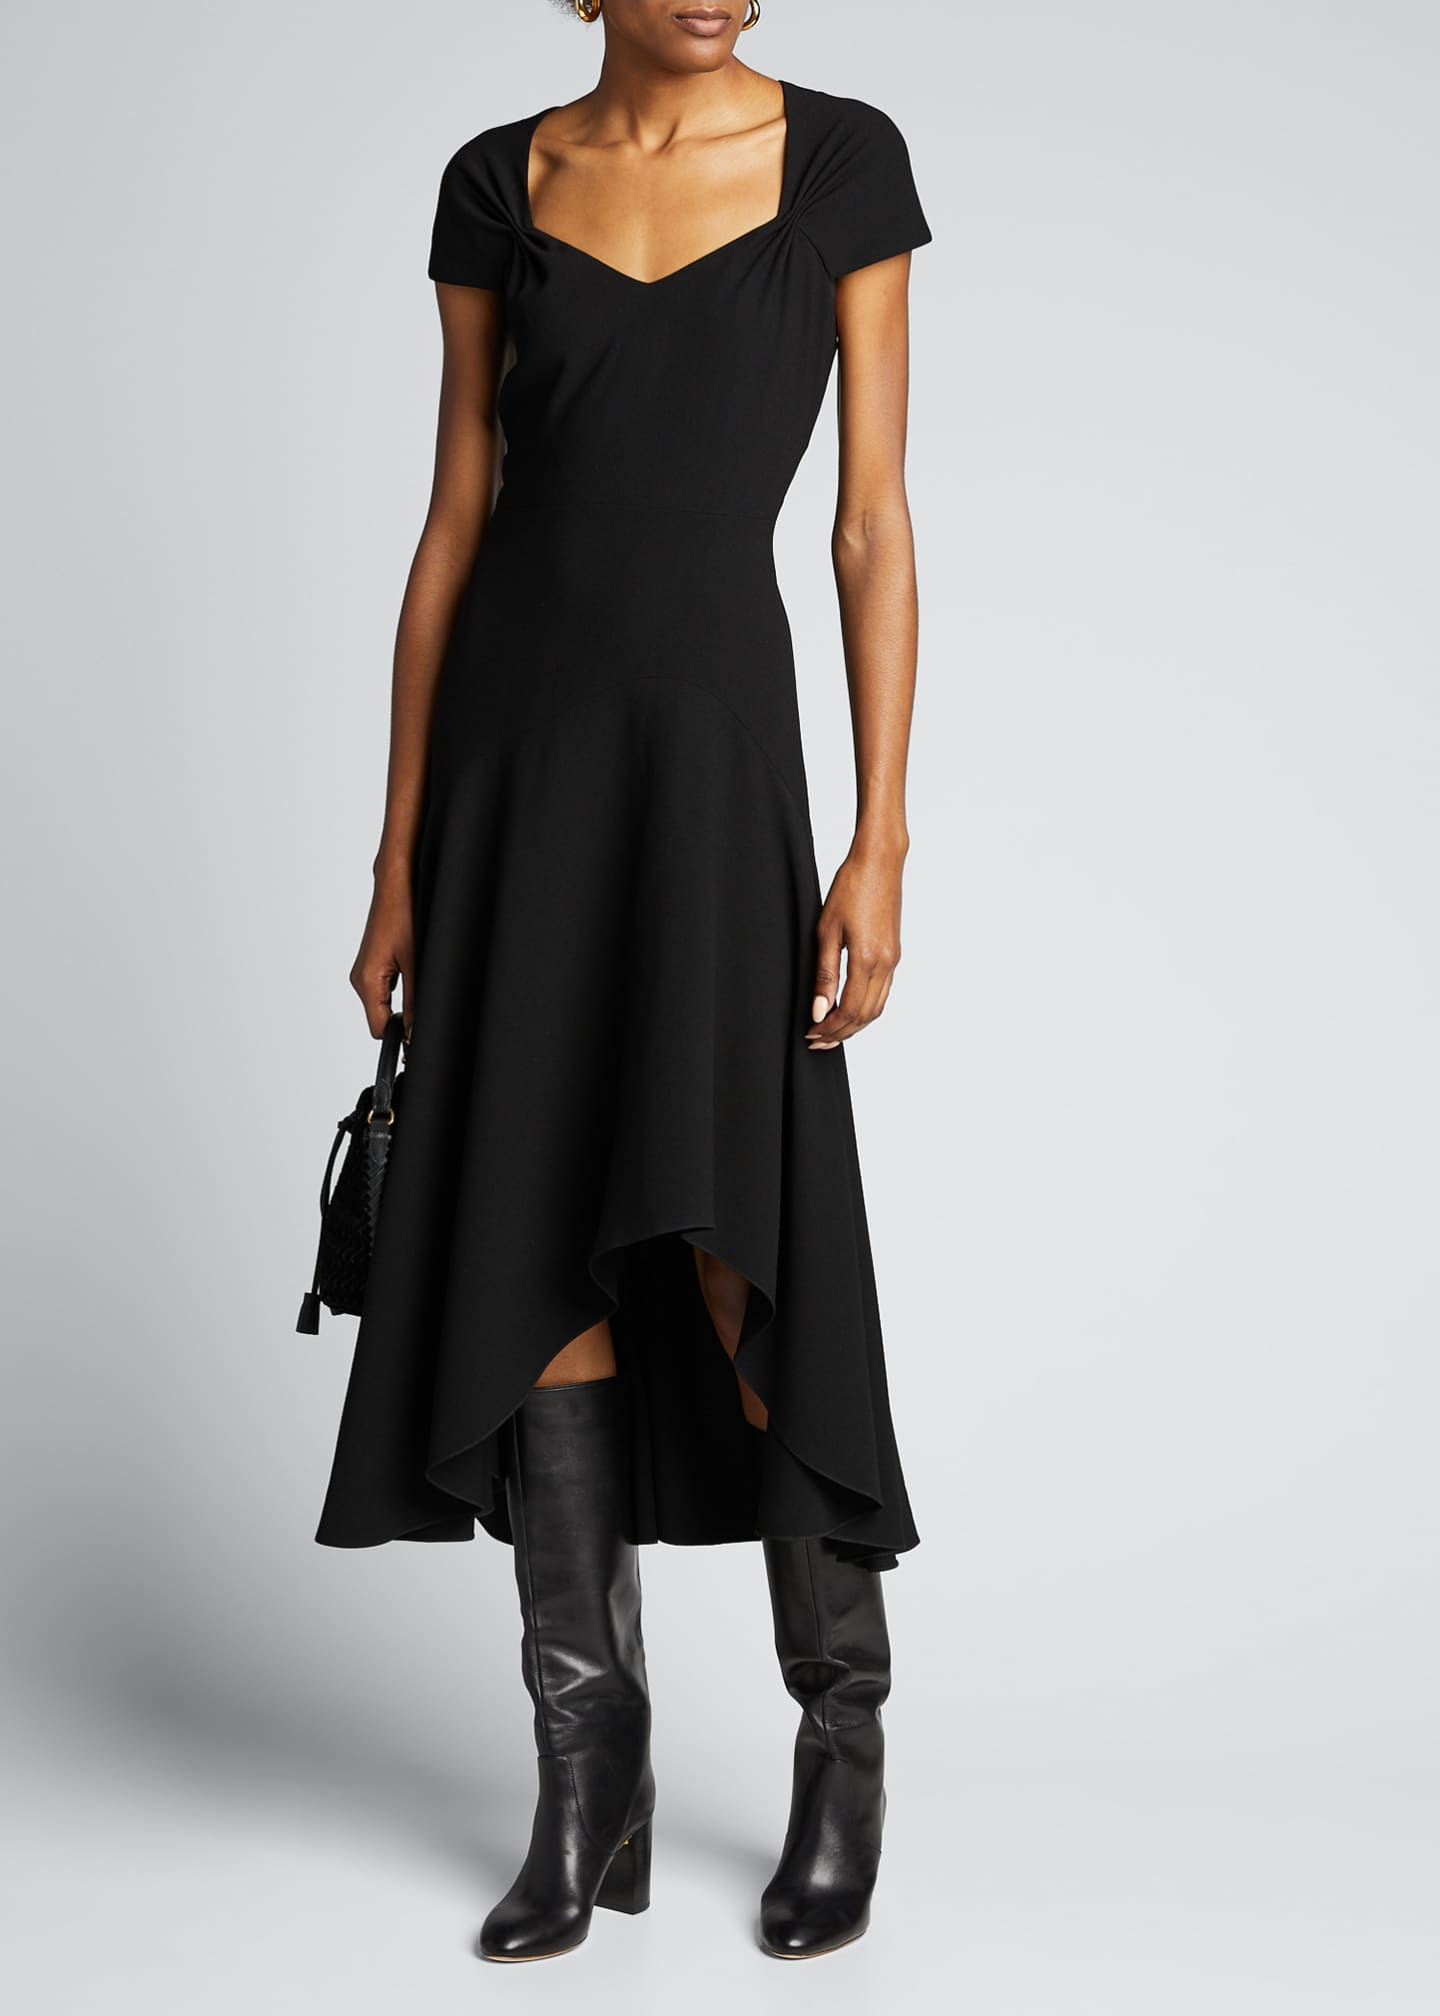 Elie Tahari Phoenix Short-Sleeve Asymmetrical Midi Dress